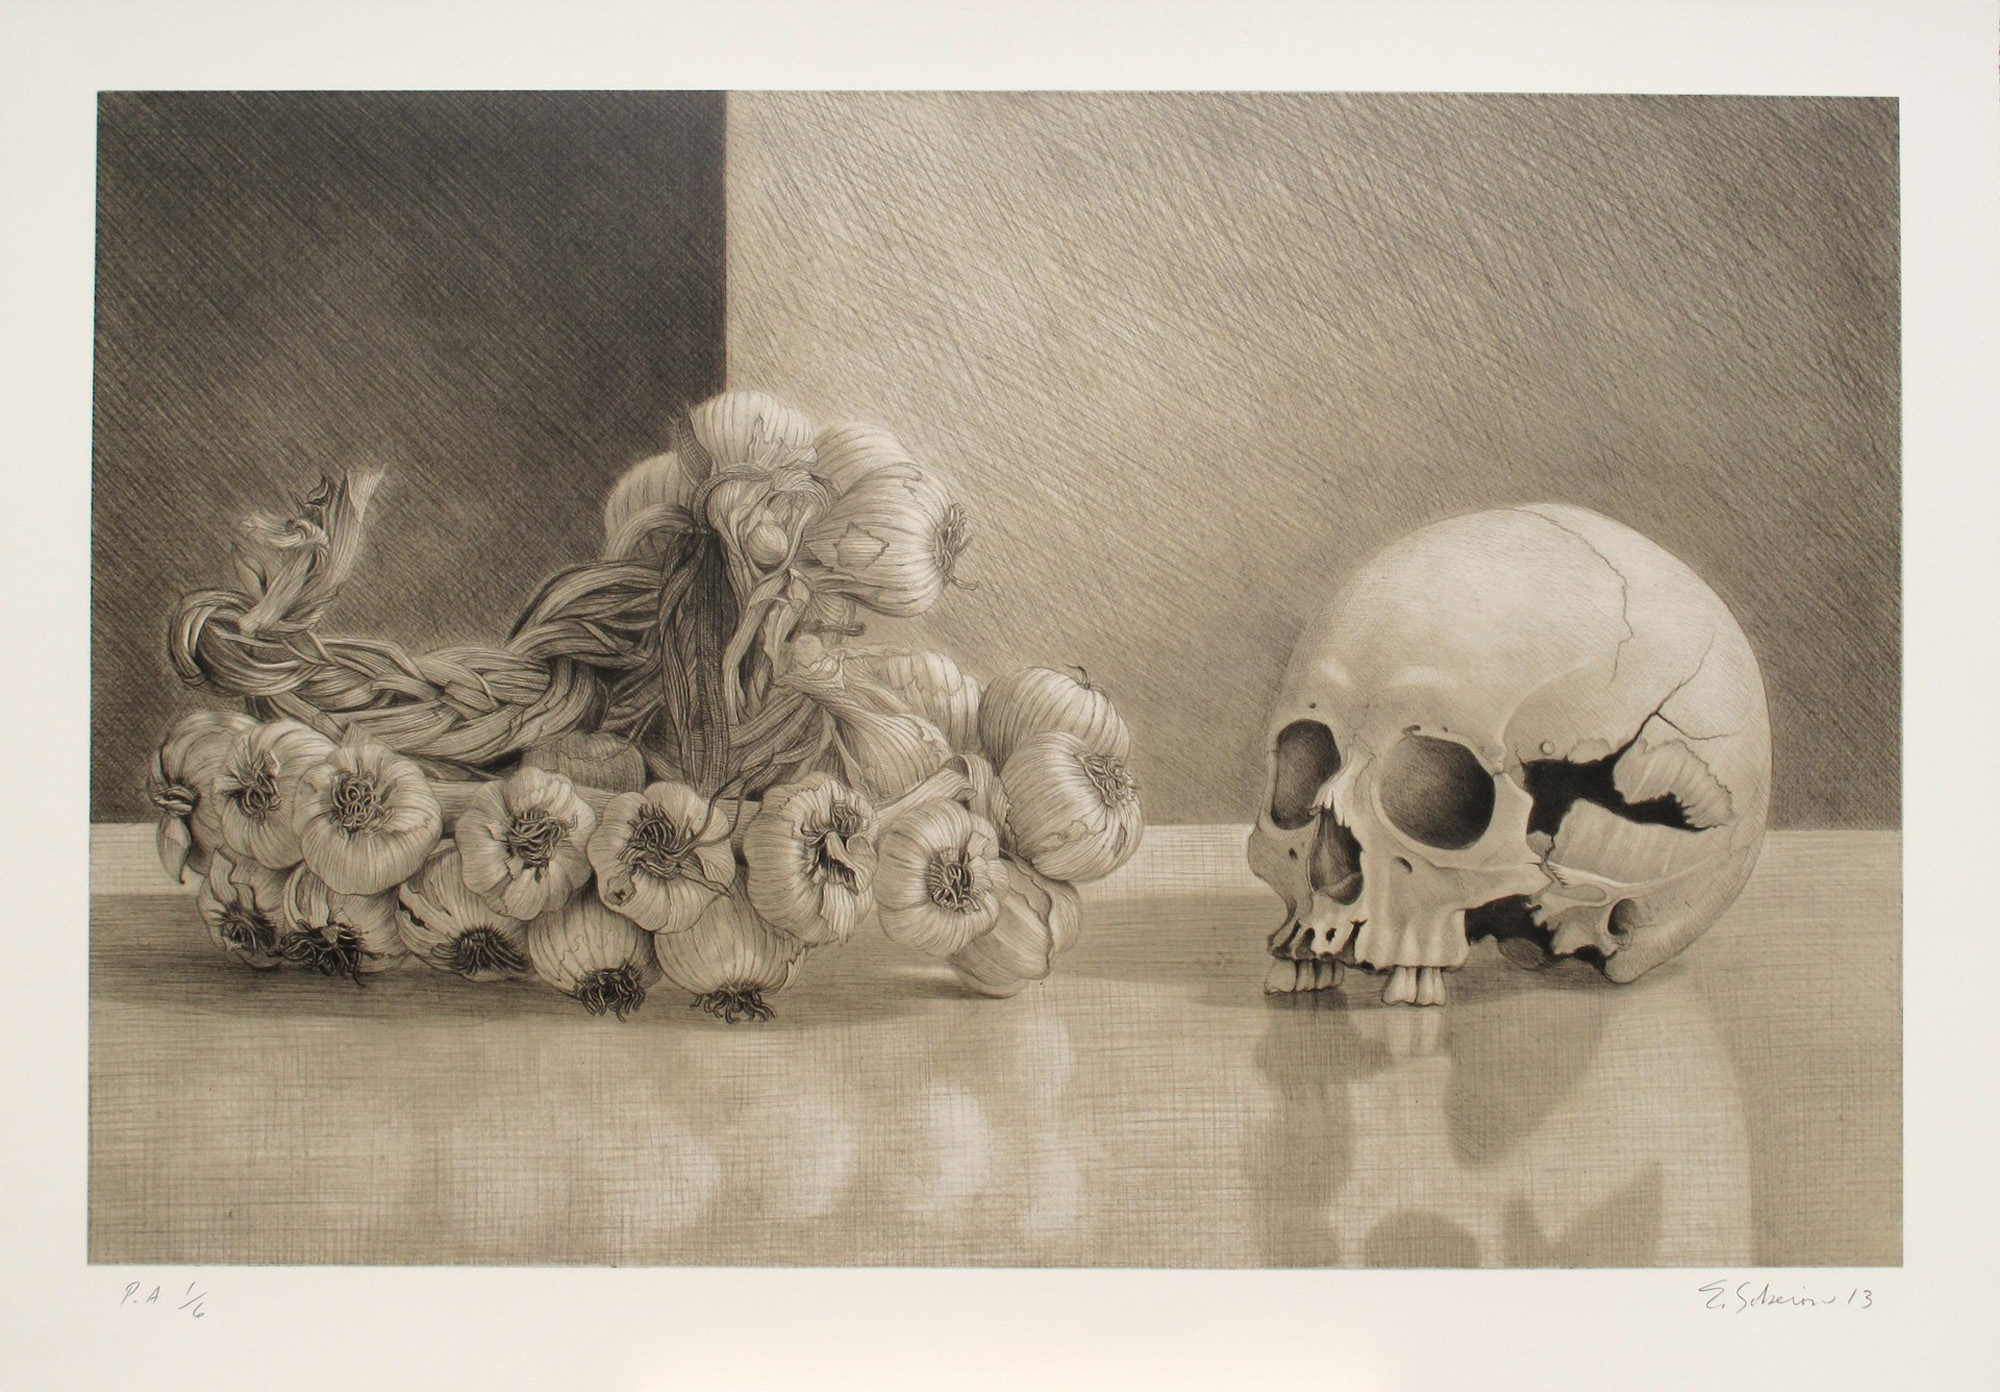 Edgar Soberon   Skull with Garland  Lithograph 17.5 x 27 inches, APS 254G